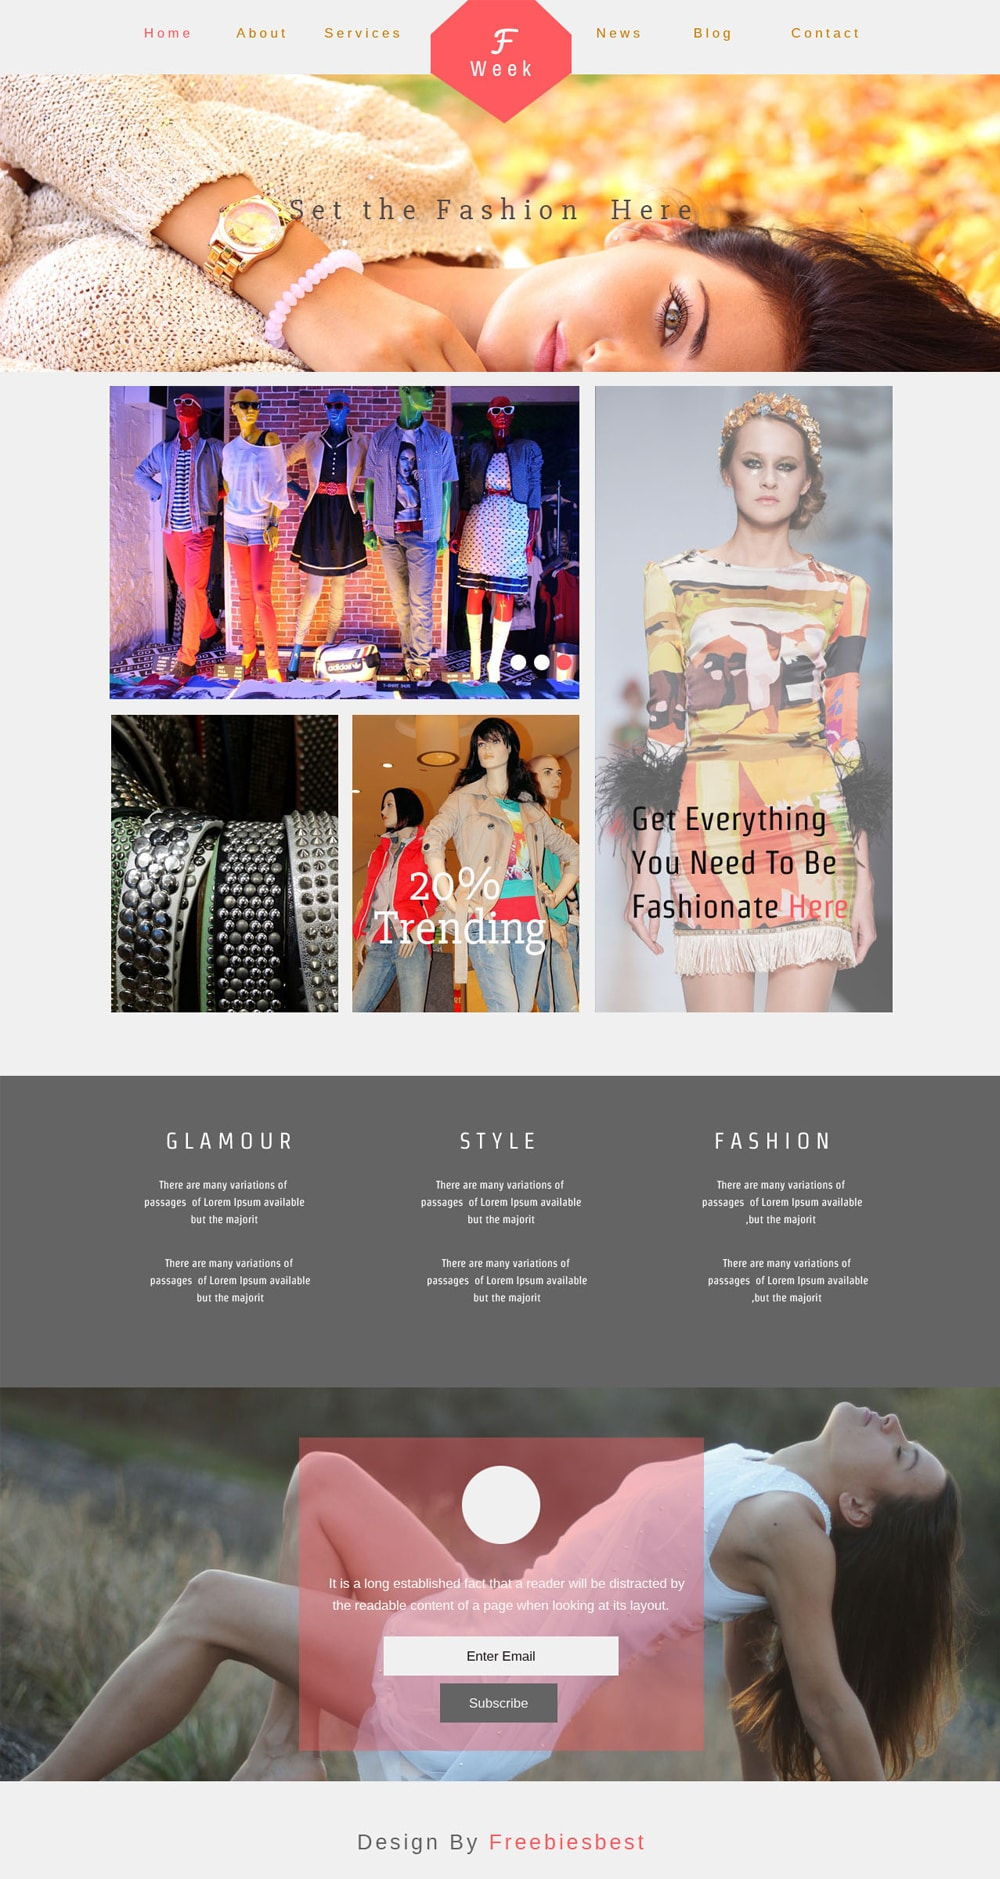 Fashion Week - Free Ecommerse Web Template PSD